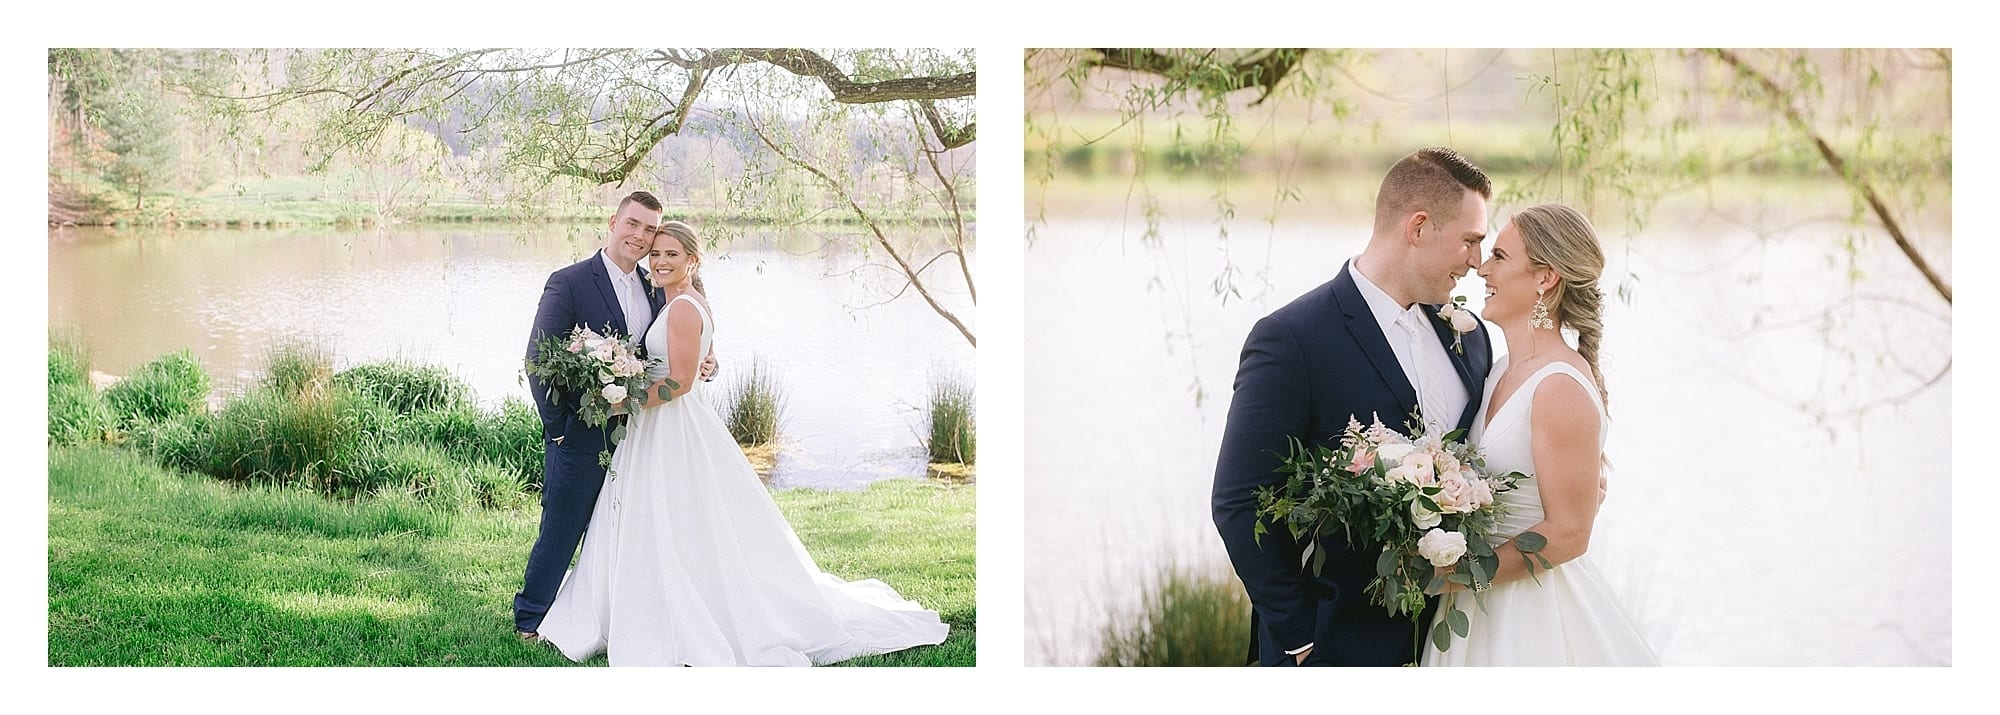 Bride and groom posing beside pond under willow tree